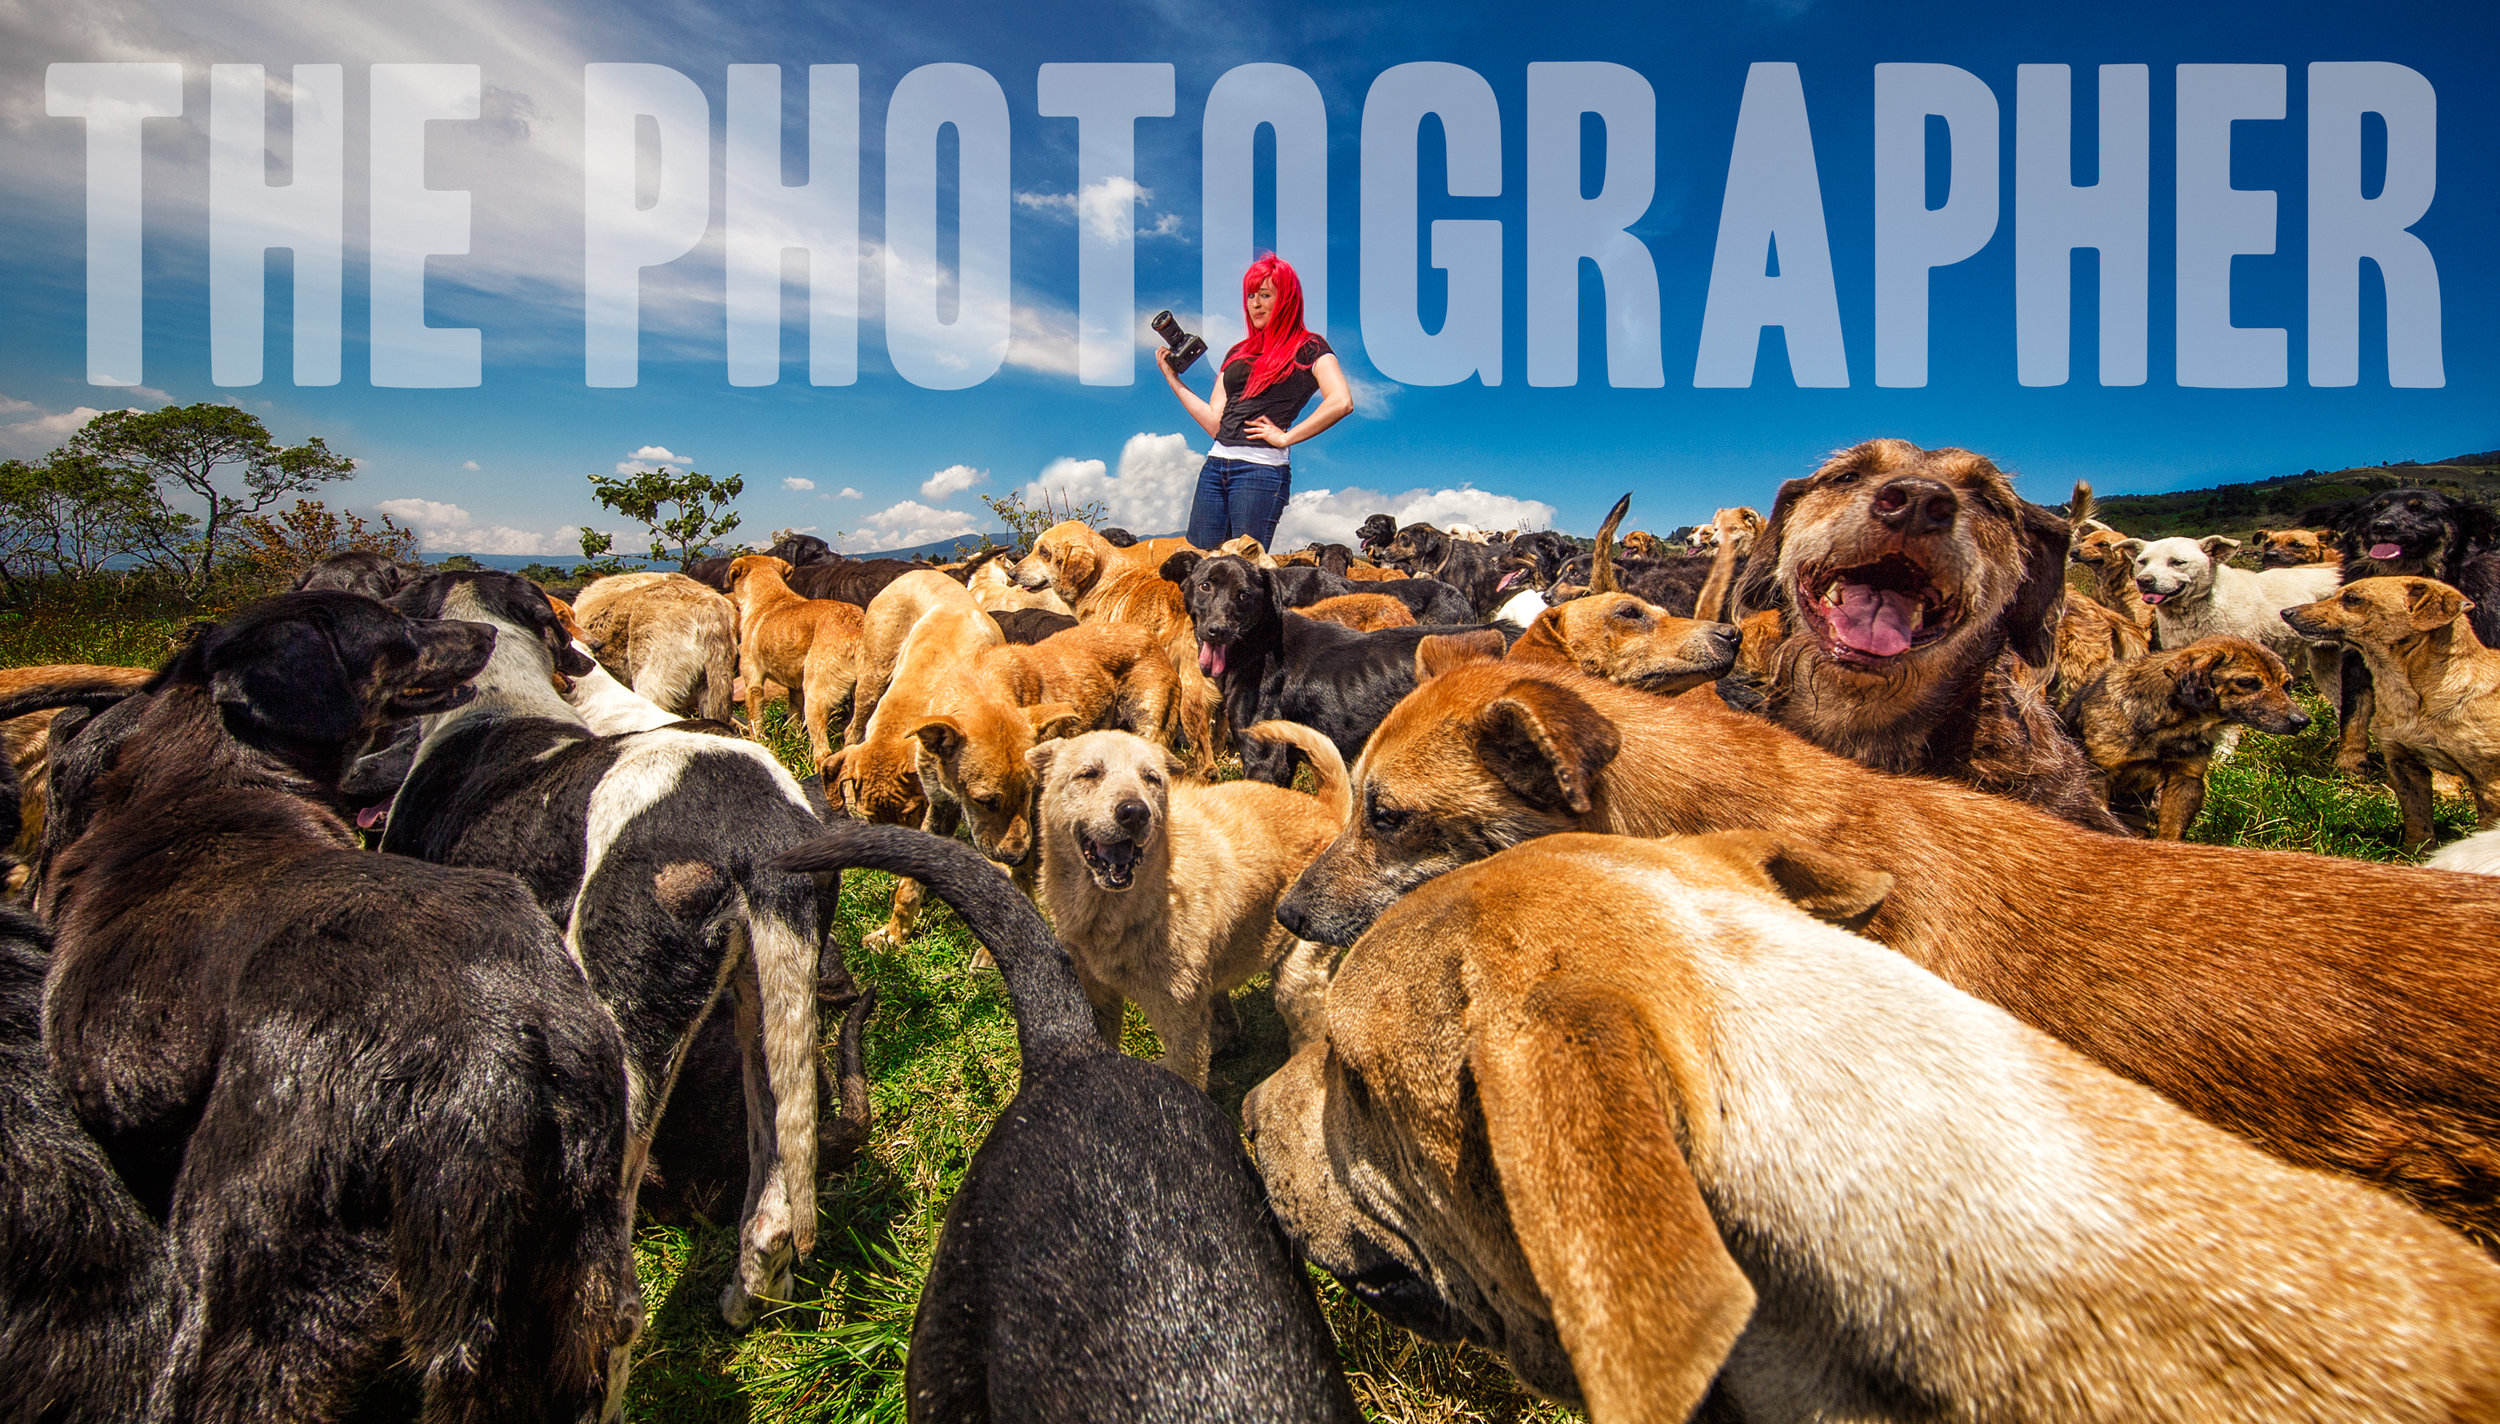 Kaylee at Territorio de Zaguates or 'Land of the Strays' in English, where over 800 homeless and abandoned dogs roam atop a mountain sanctuary in Alejuela, Costa Rica.